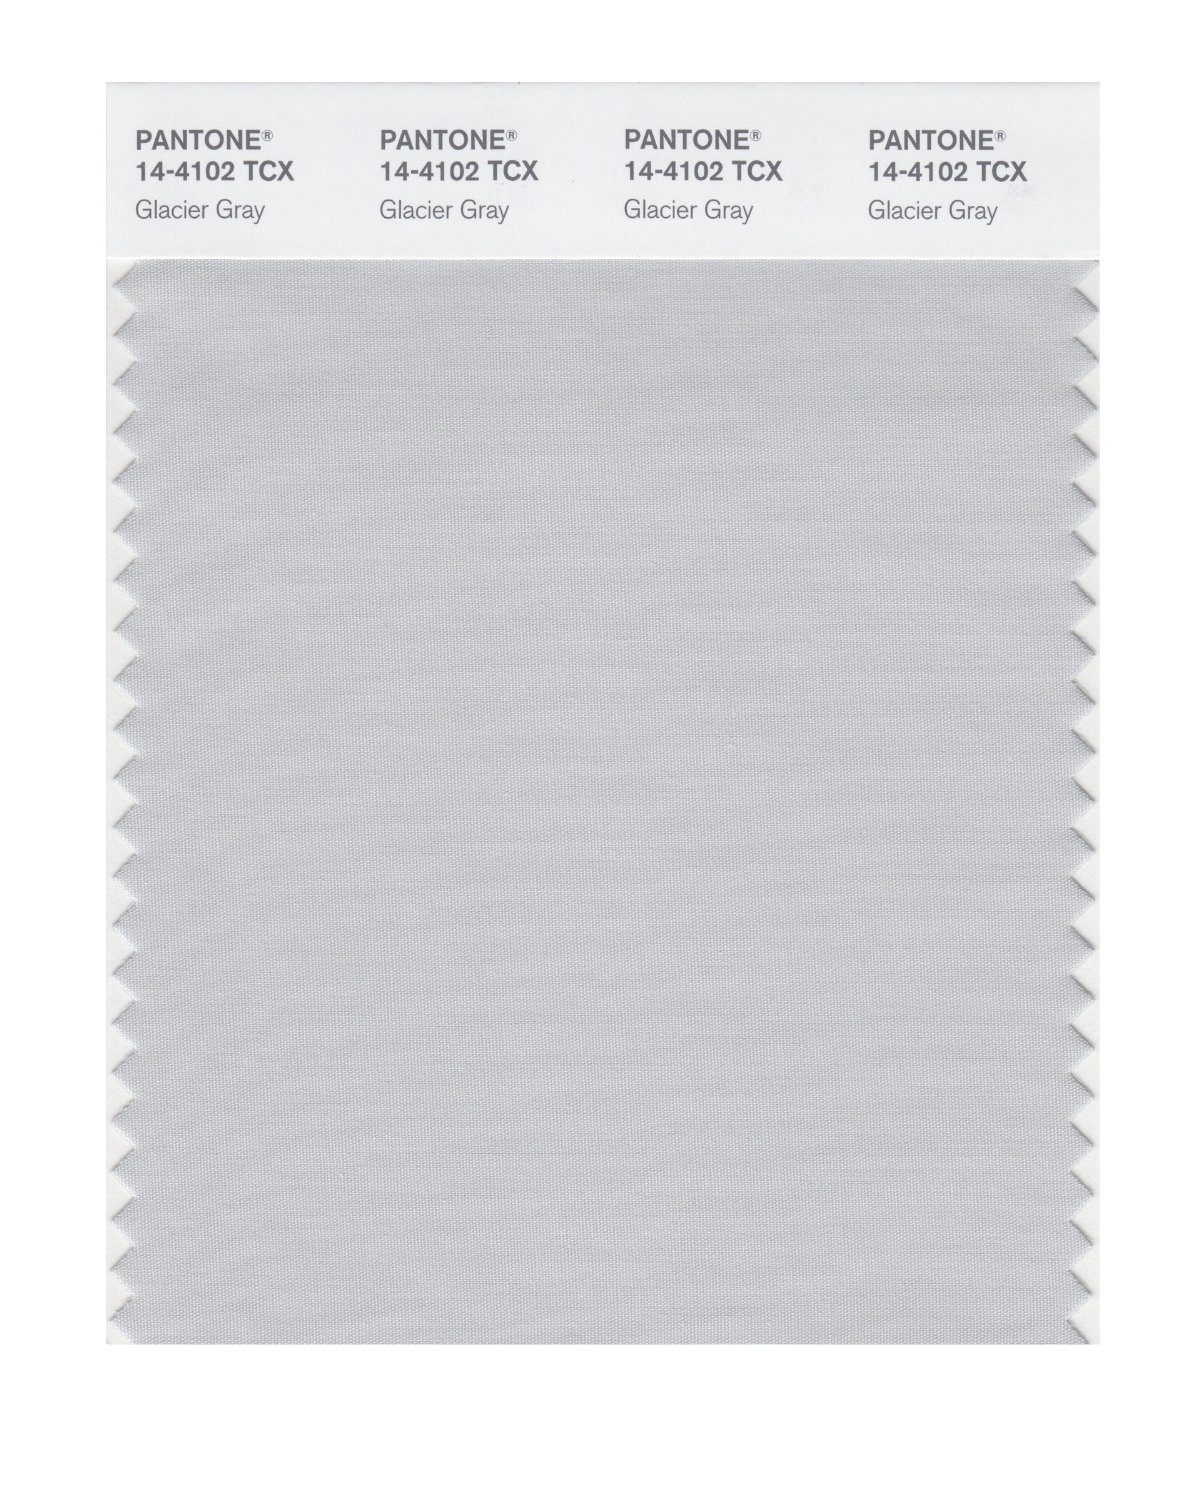 Pantone Smart Swatch 14-4102 Glacier Gray